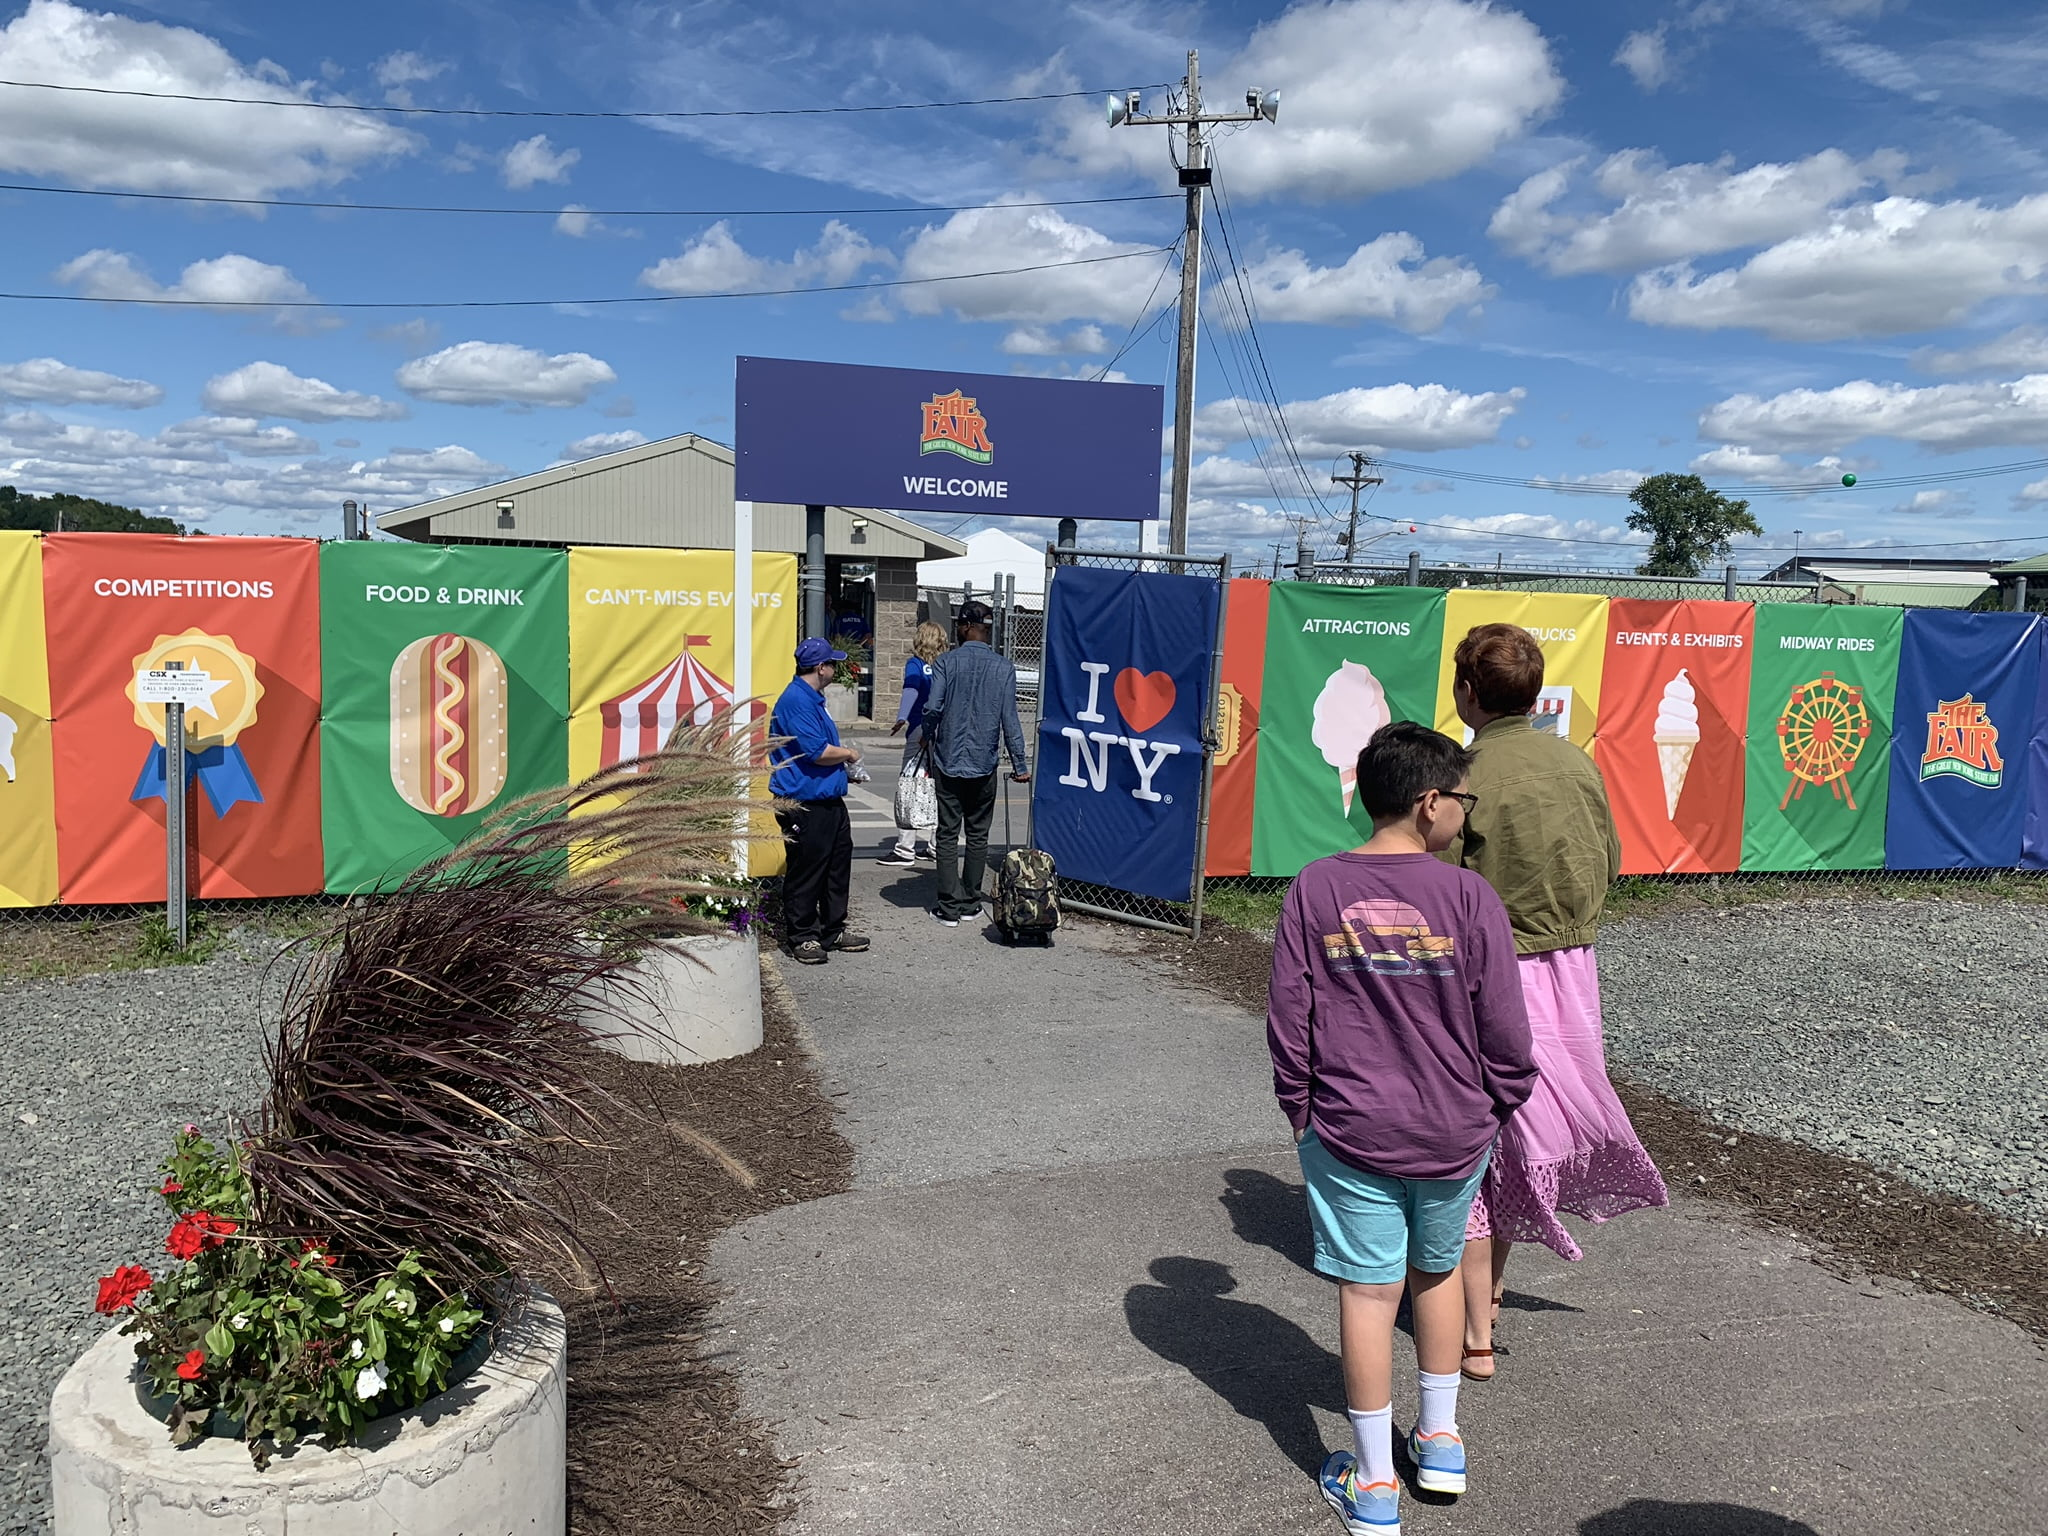 Entrance to the NY State Fair